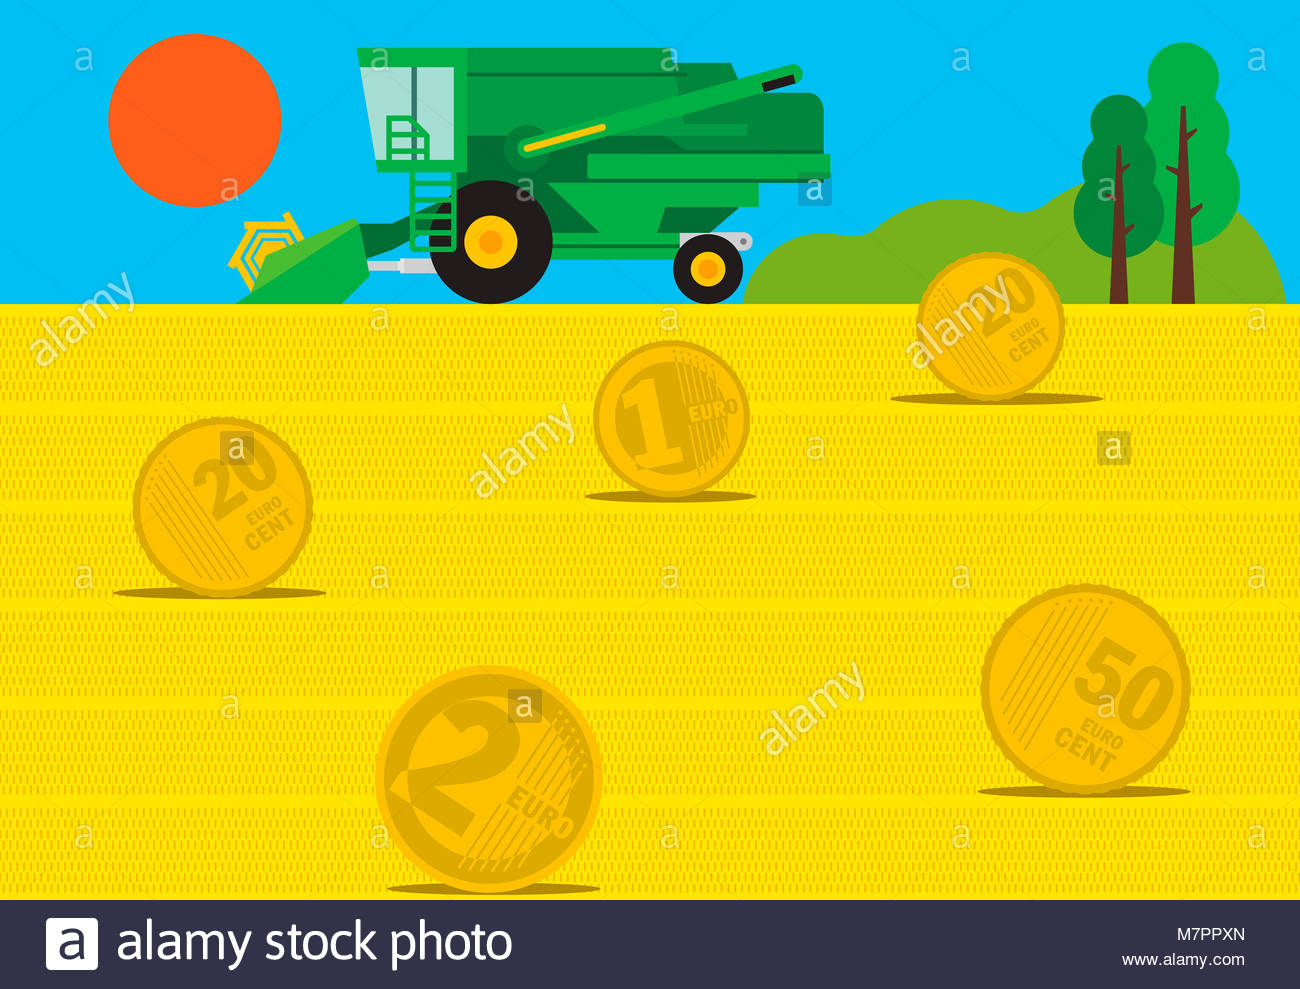 Combine harvester in field of euro coin hay bales - Stock Image